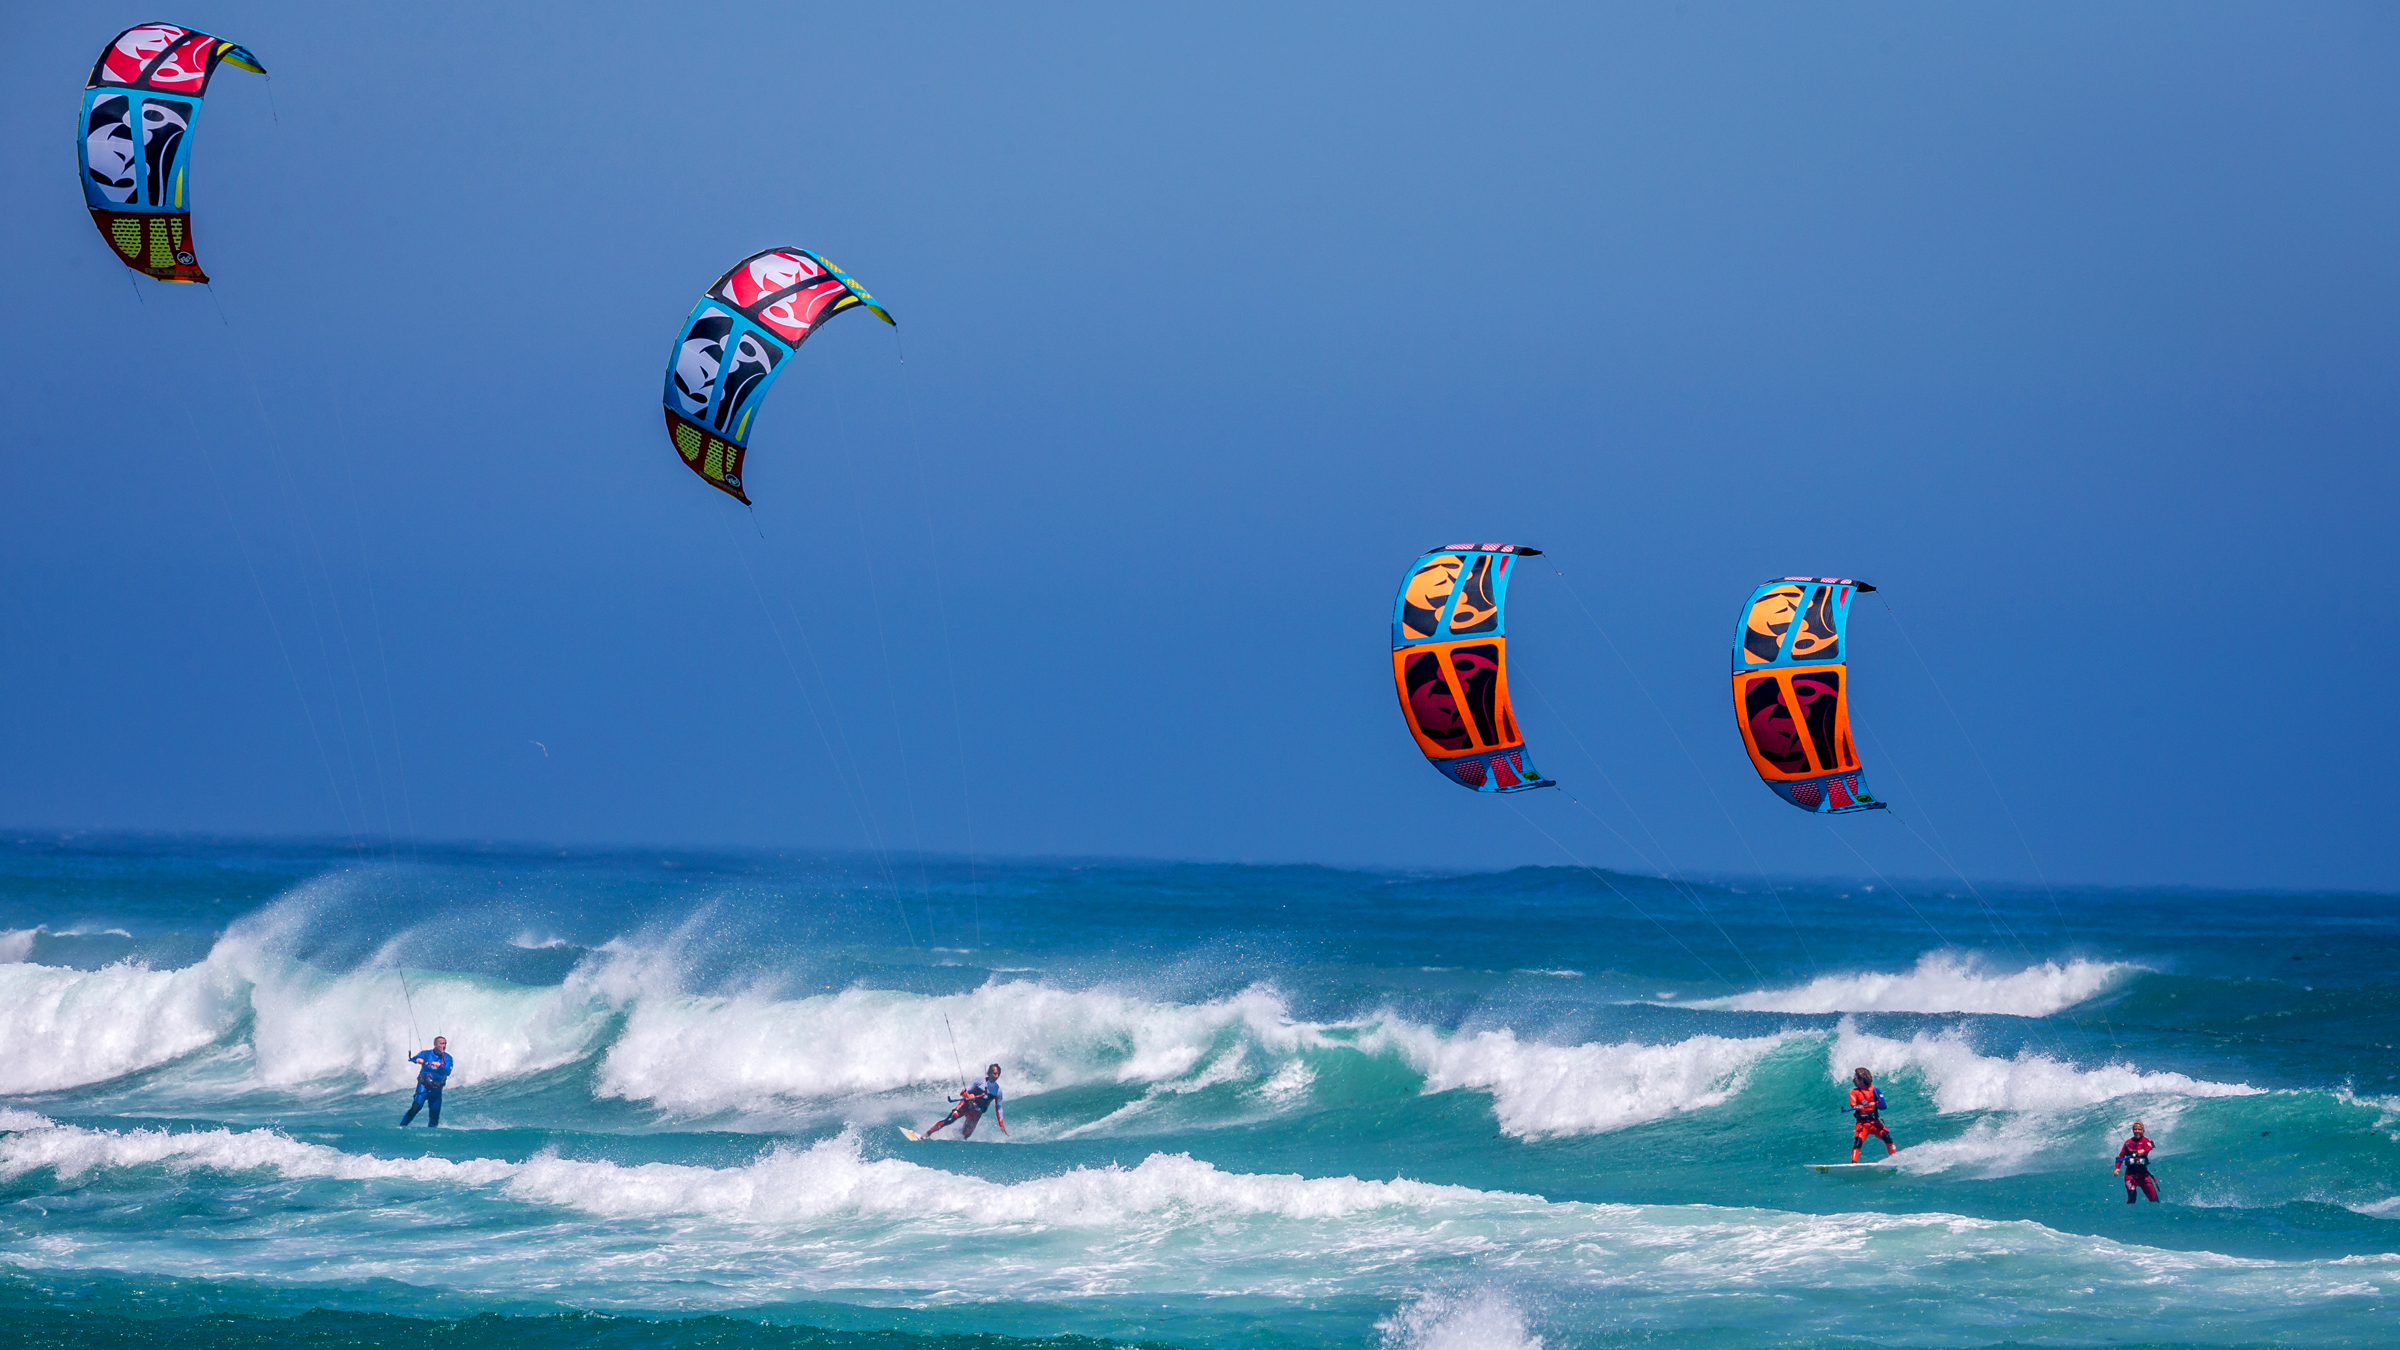 kitesurf wallpaper image - RRD squad taking over this wave on 2015 Religion kites - RRD Kiteboarding - in resolution: High Definition - HD 16:9 2400 X 1350